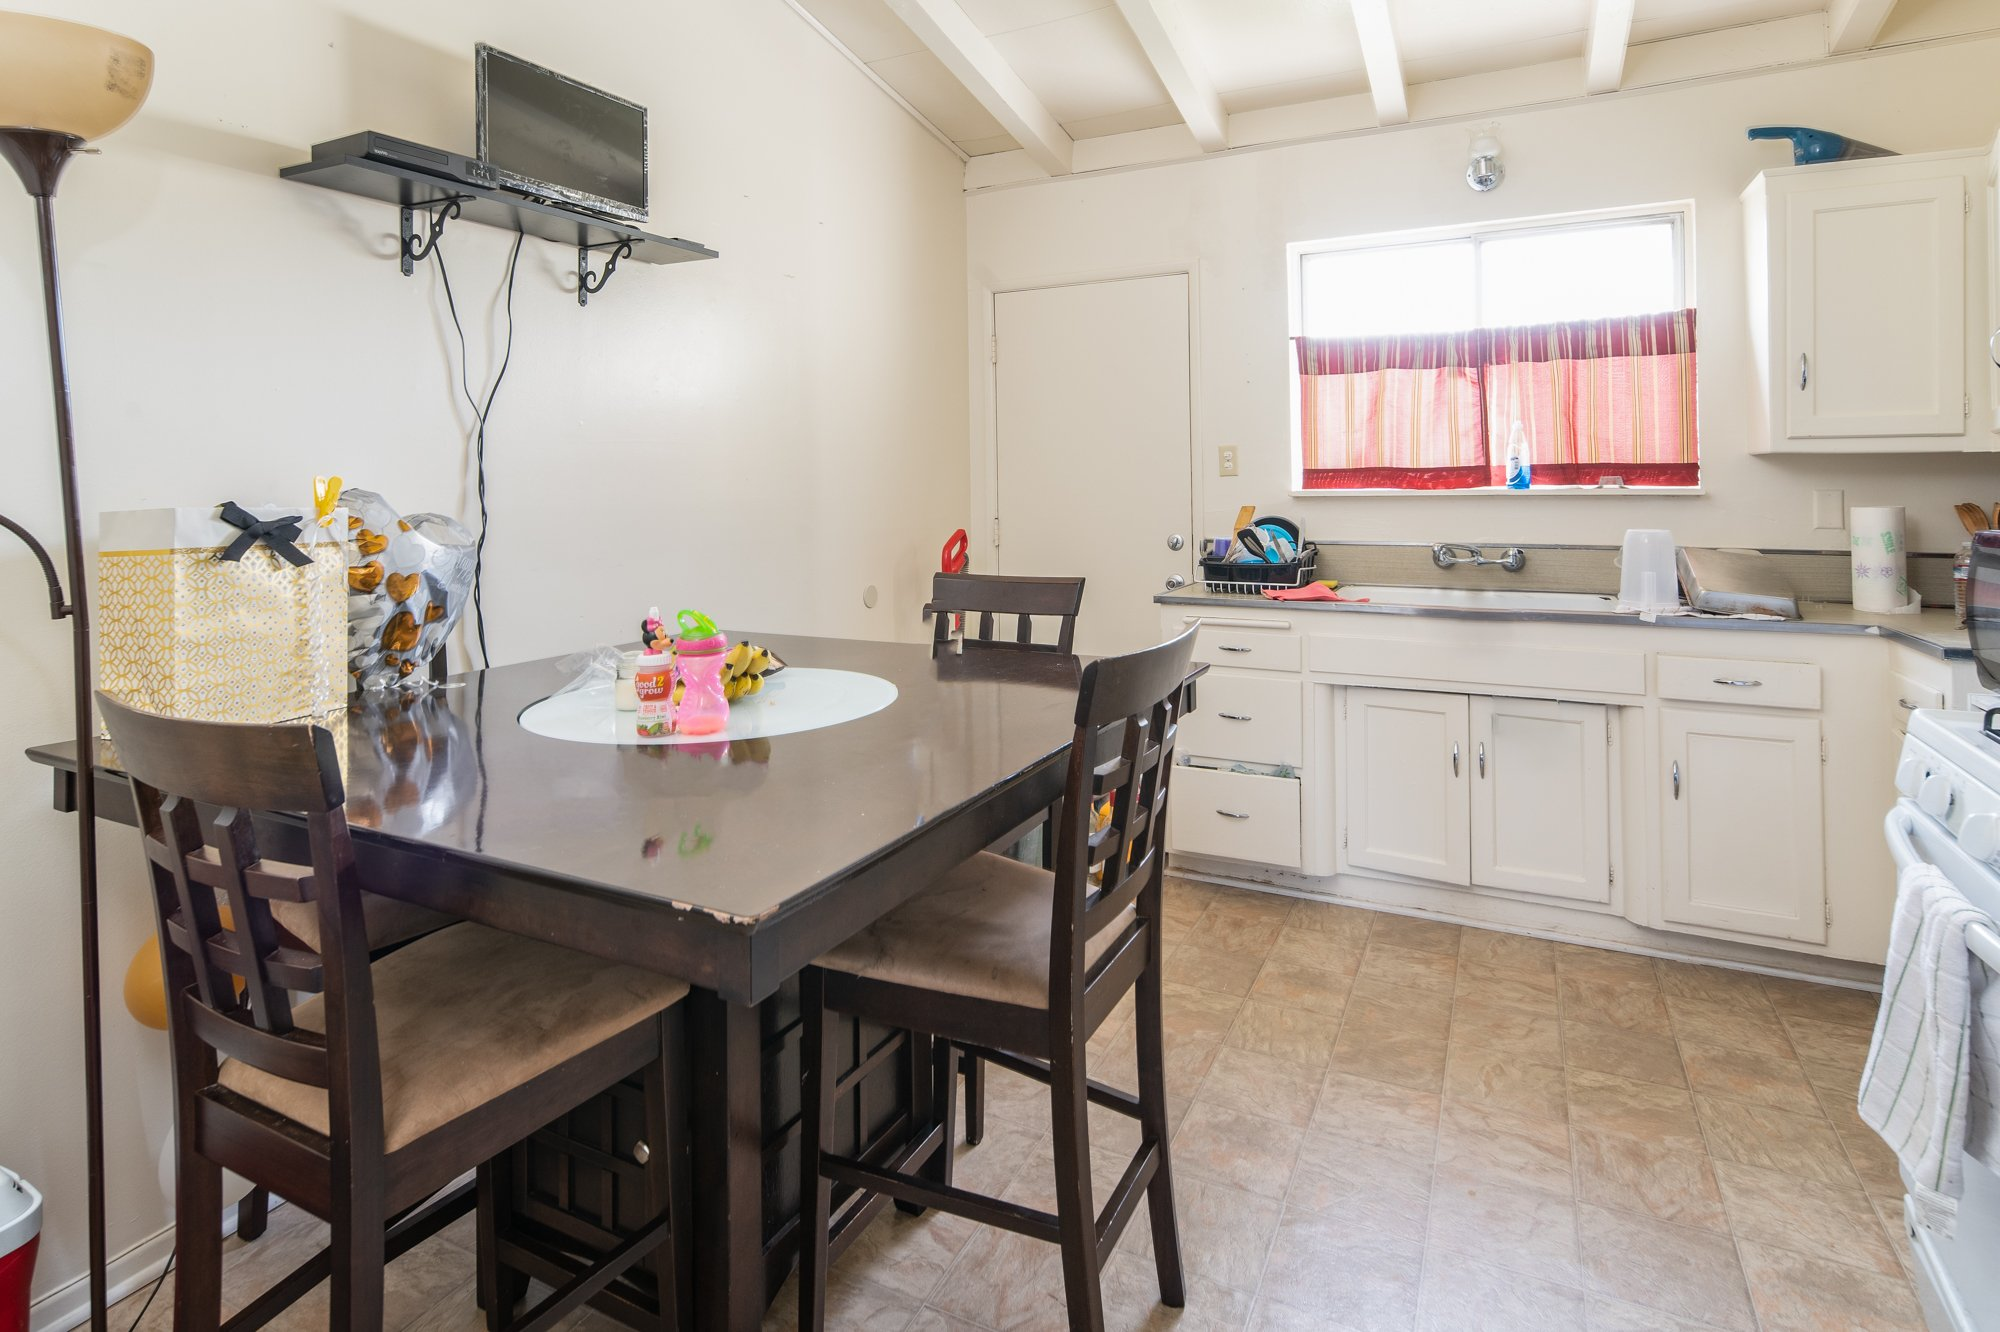 Palmdale, CA best real estate agent 557 - 559 West Avenue H 8, Lancaster, CA 93534 (dining area)